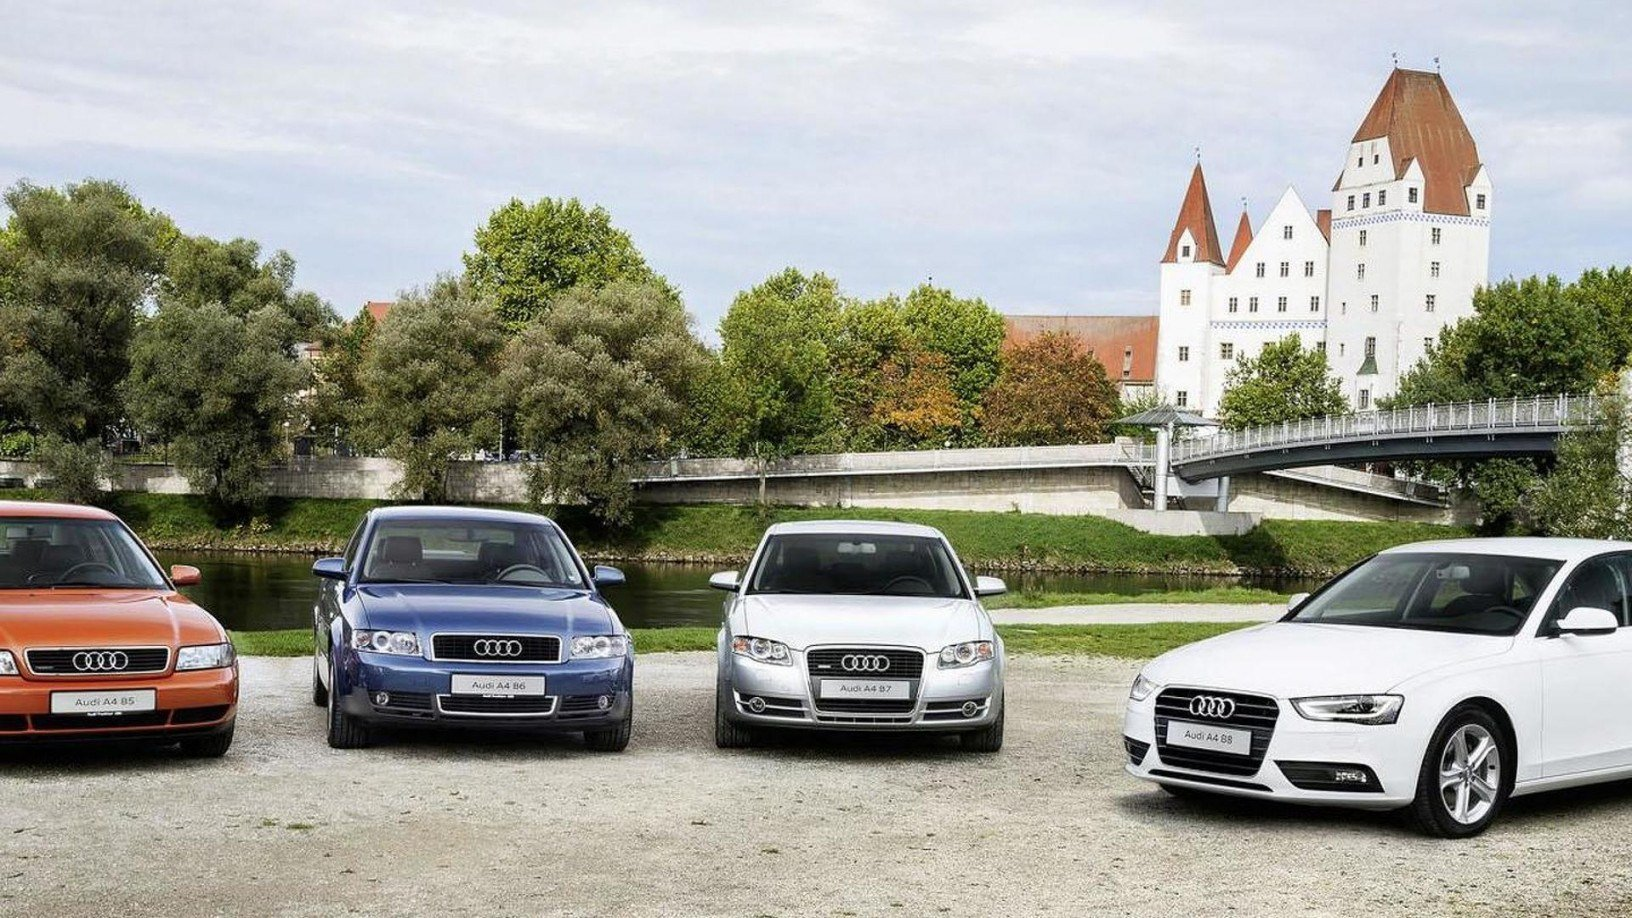 Latest Audi A4 Models All About The Best Audi Cars Free Download